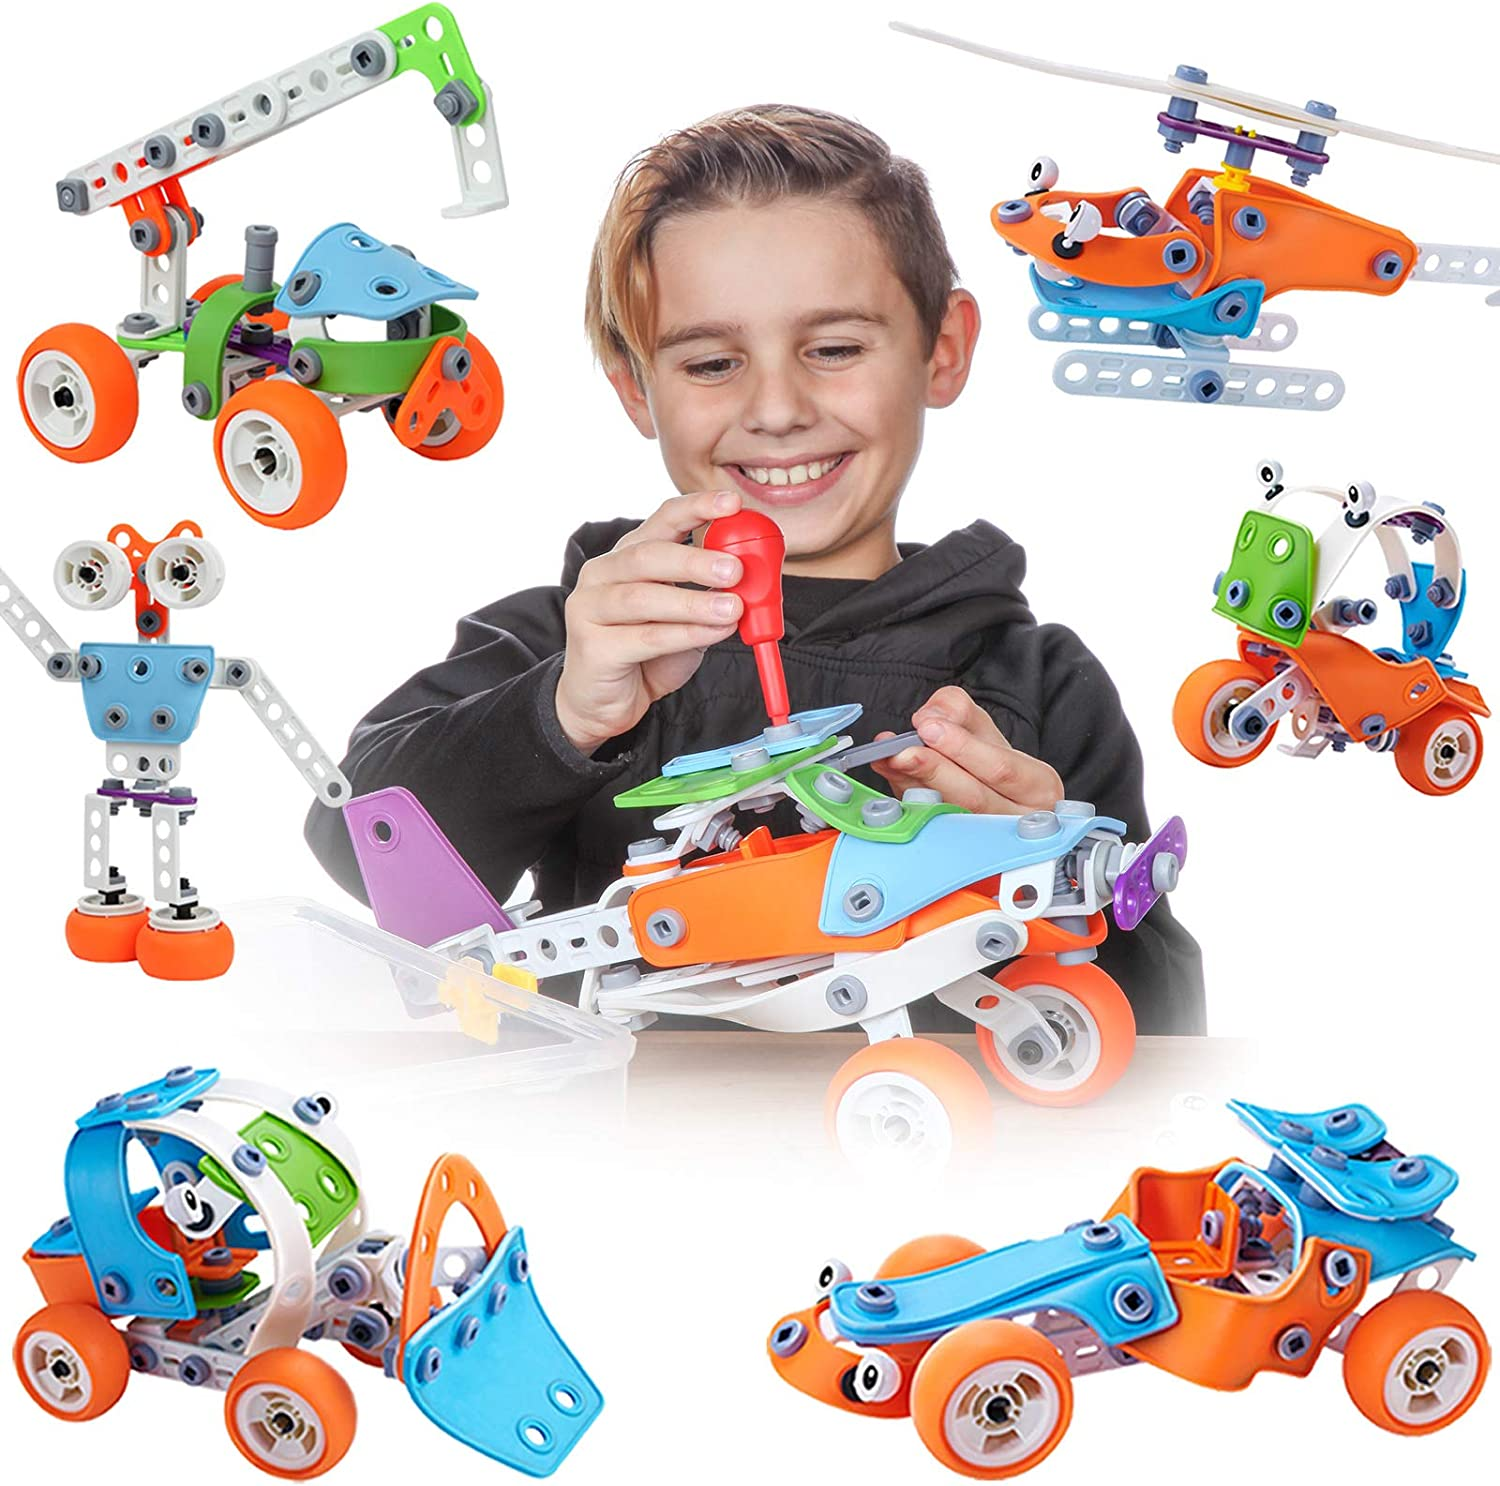 Amazon Com Toy Pal Stem Toys For 6 8 Year Old Boys Girls 7 In 1 Engineering Building Set 163 Pc Educational Construction Kit For Kids Ages 6 12 Fun Birthday Gift Toys Games